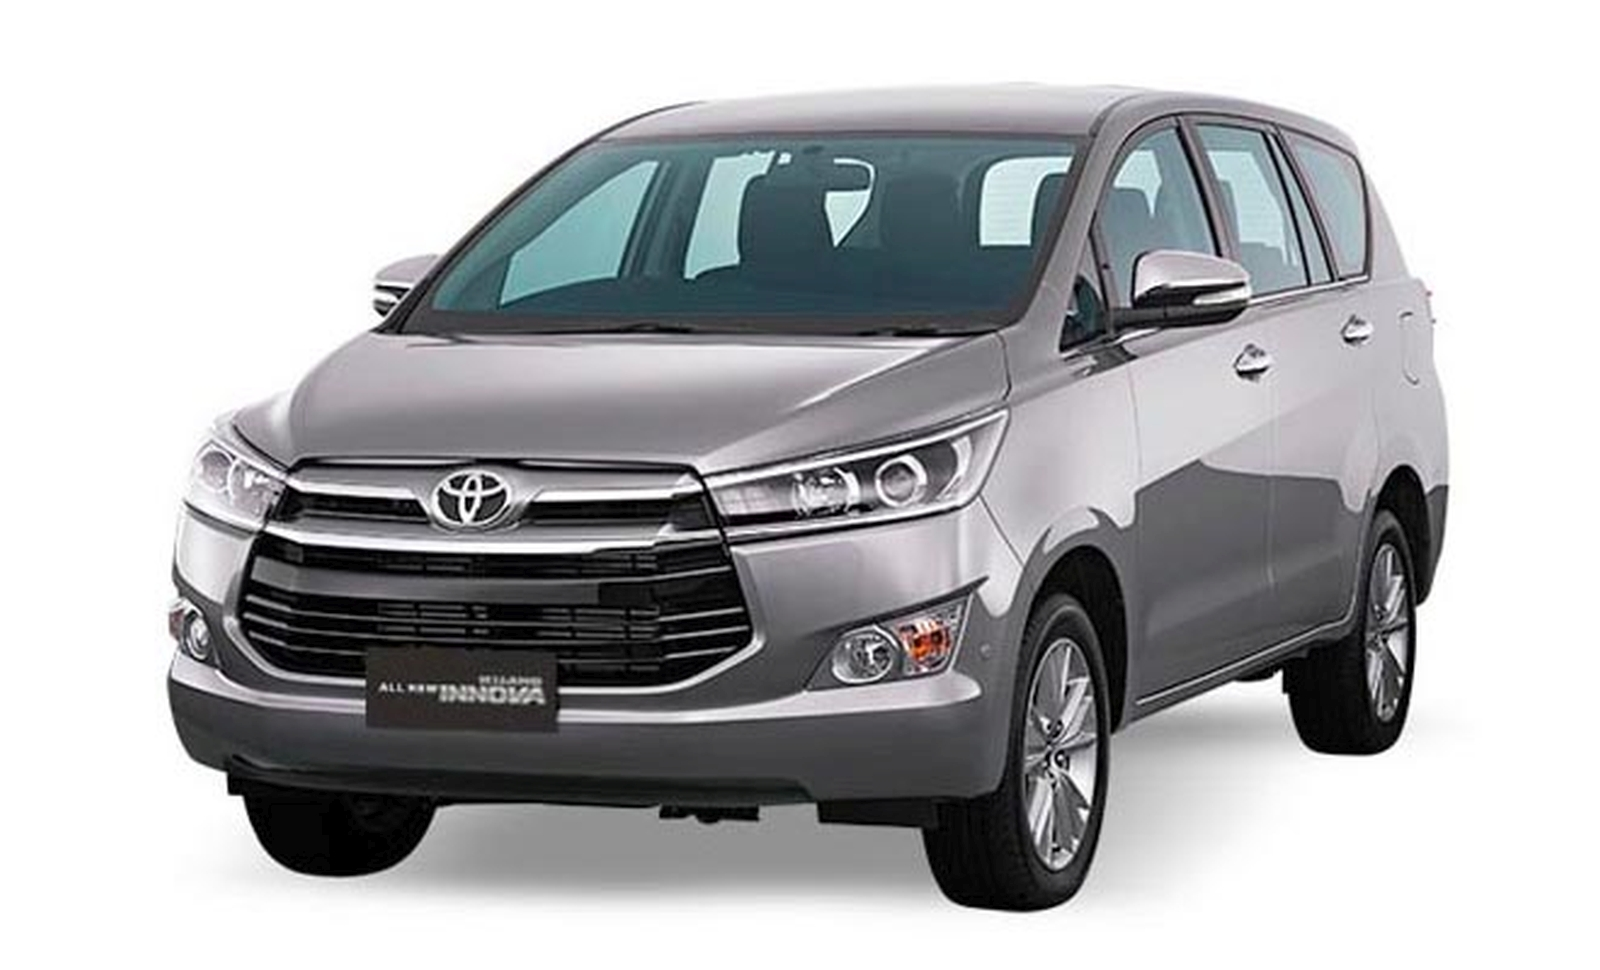 2016 Toyota Innova Officially Revealed Images Details Official Video And All You Need To Know